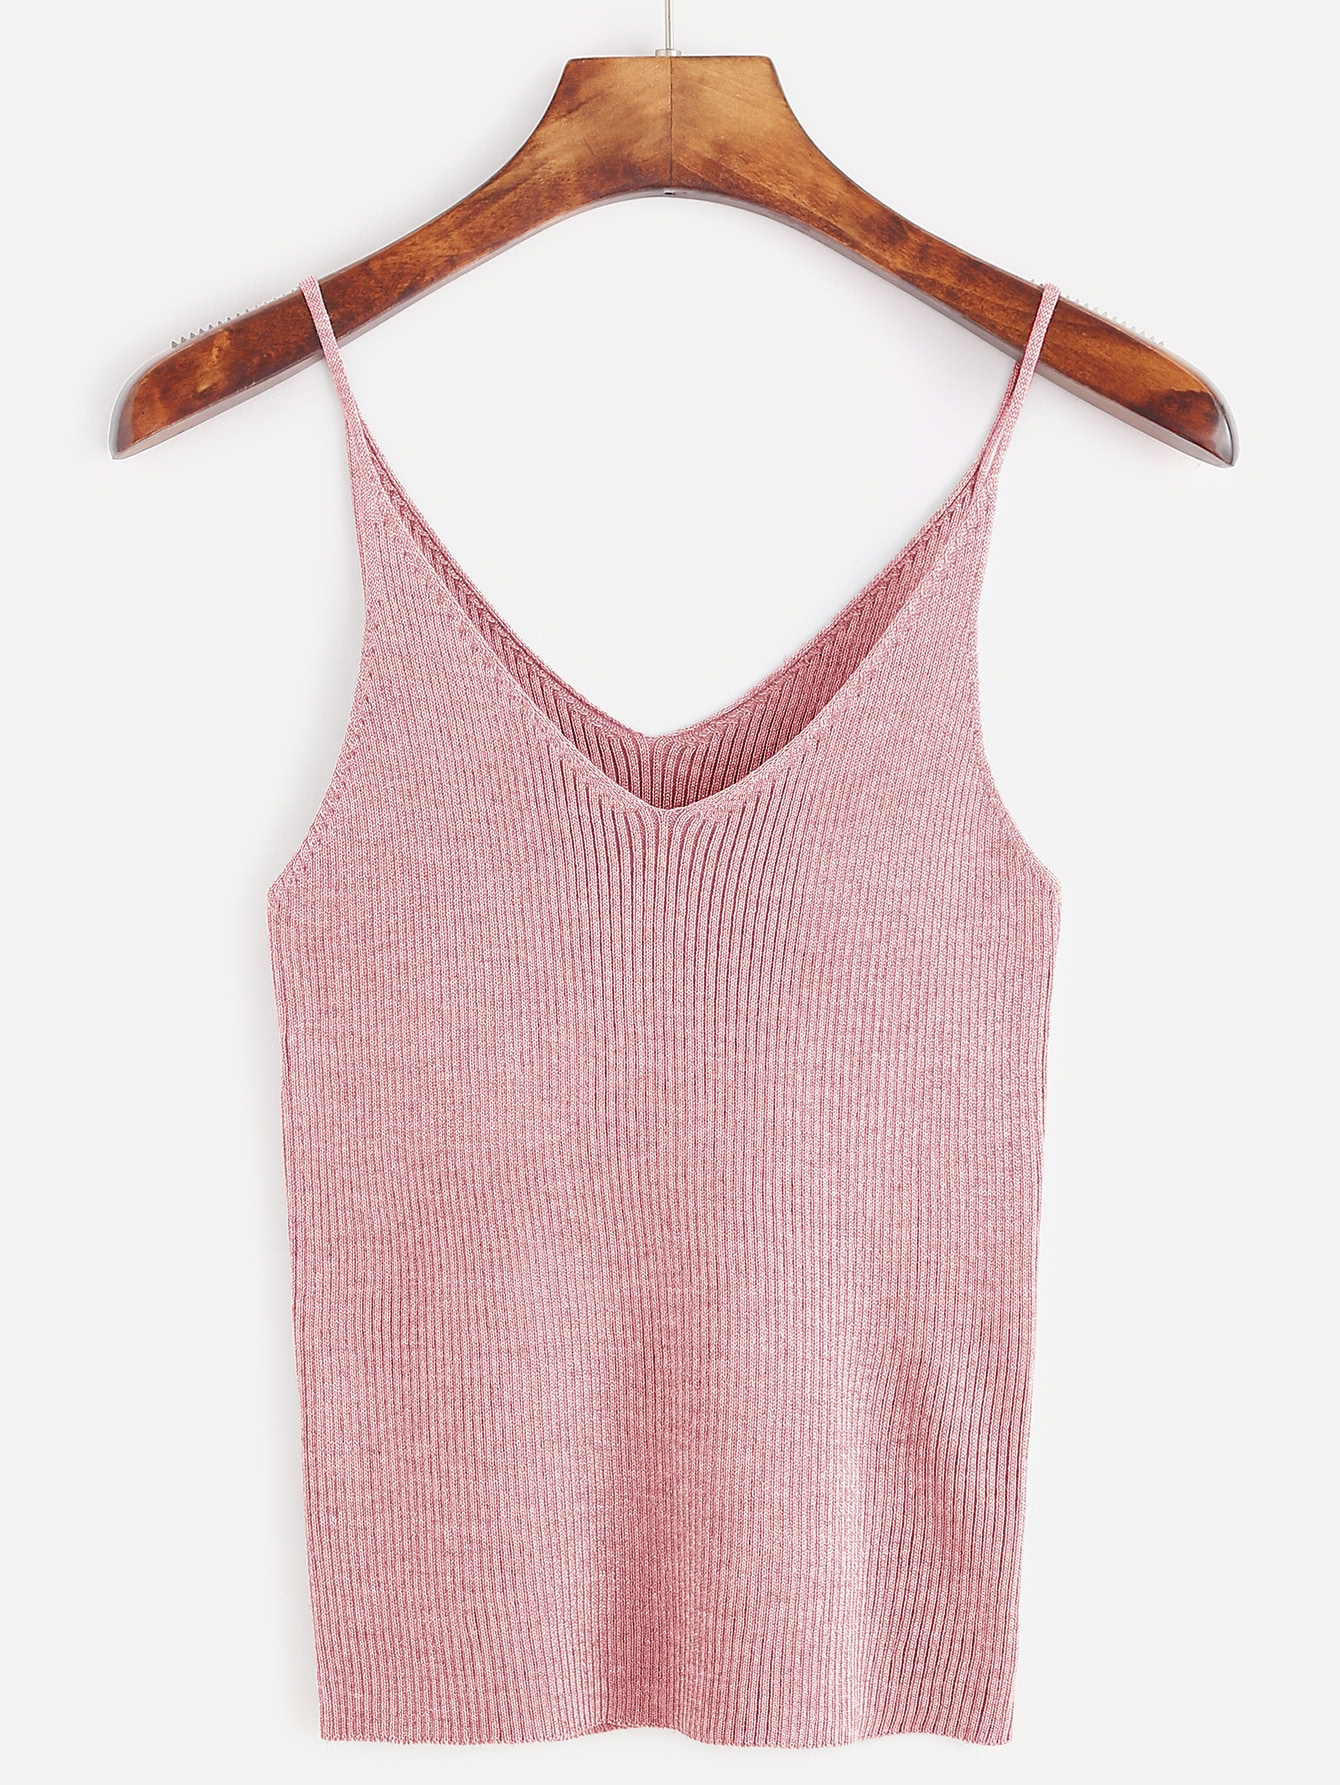 Pink Ribbed Knit Tight Cami Top RVES161121101